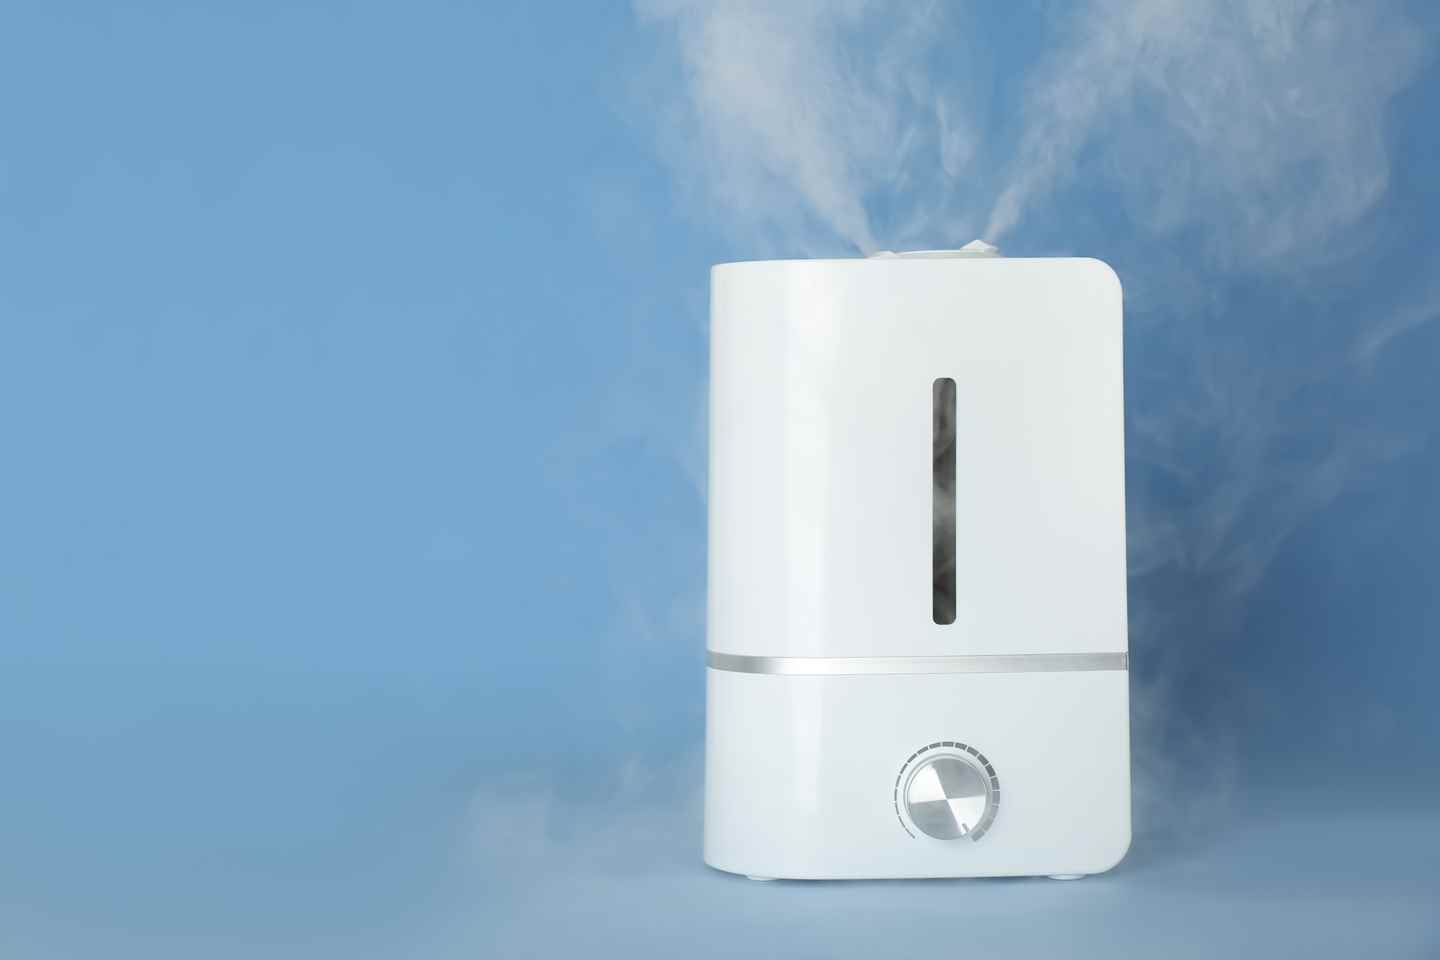 What Is The Best Single Room Humidifier?